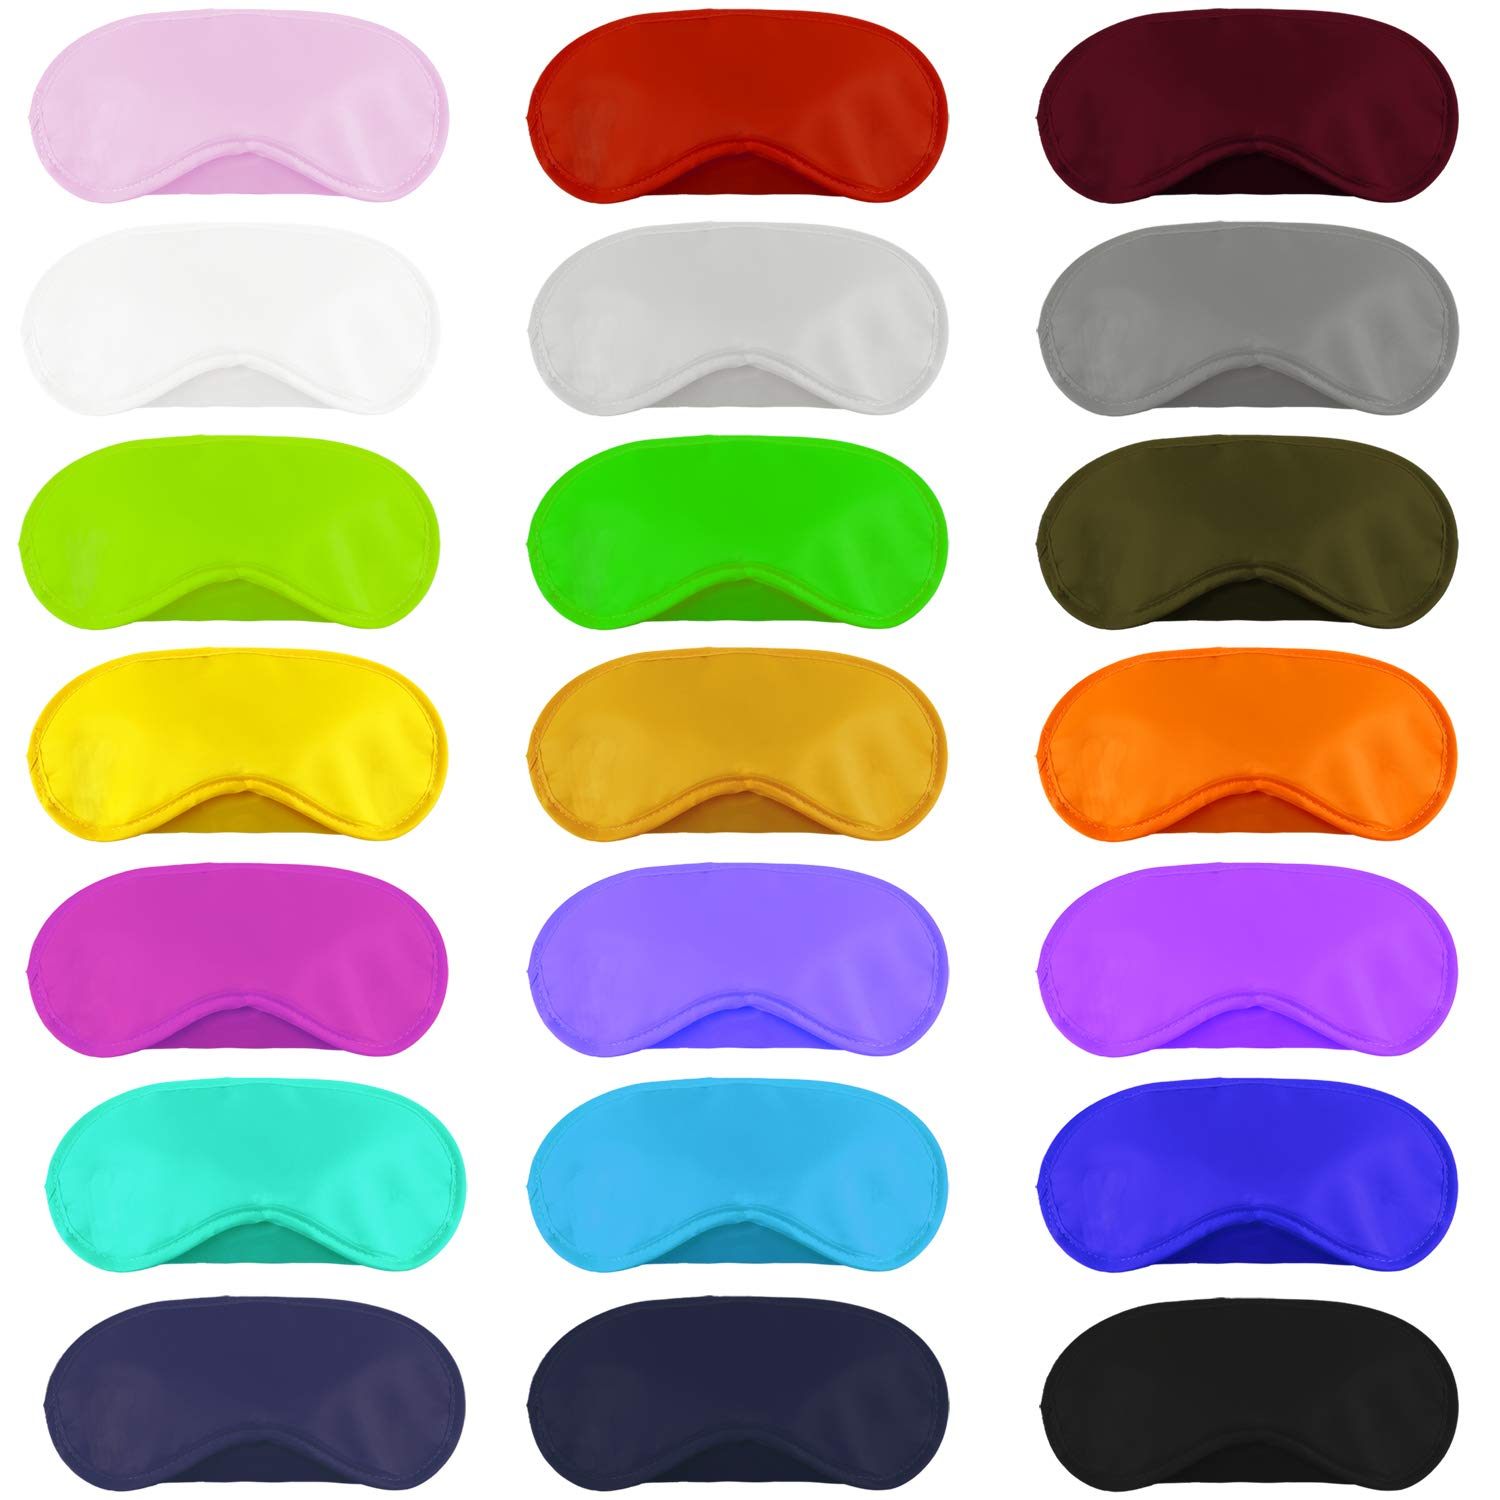 Aneco 50 Pieces Blindfold Eye Mask Shade Cover with Nose Pad and Adjustable Strap for Travel Sleep or Party Supplies, 21 Colors by Aneco